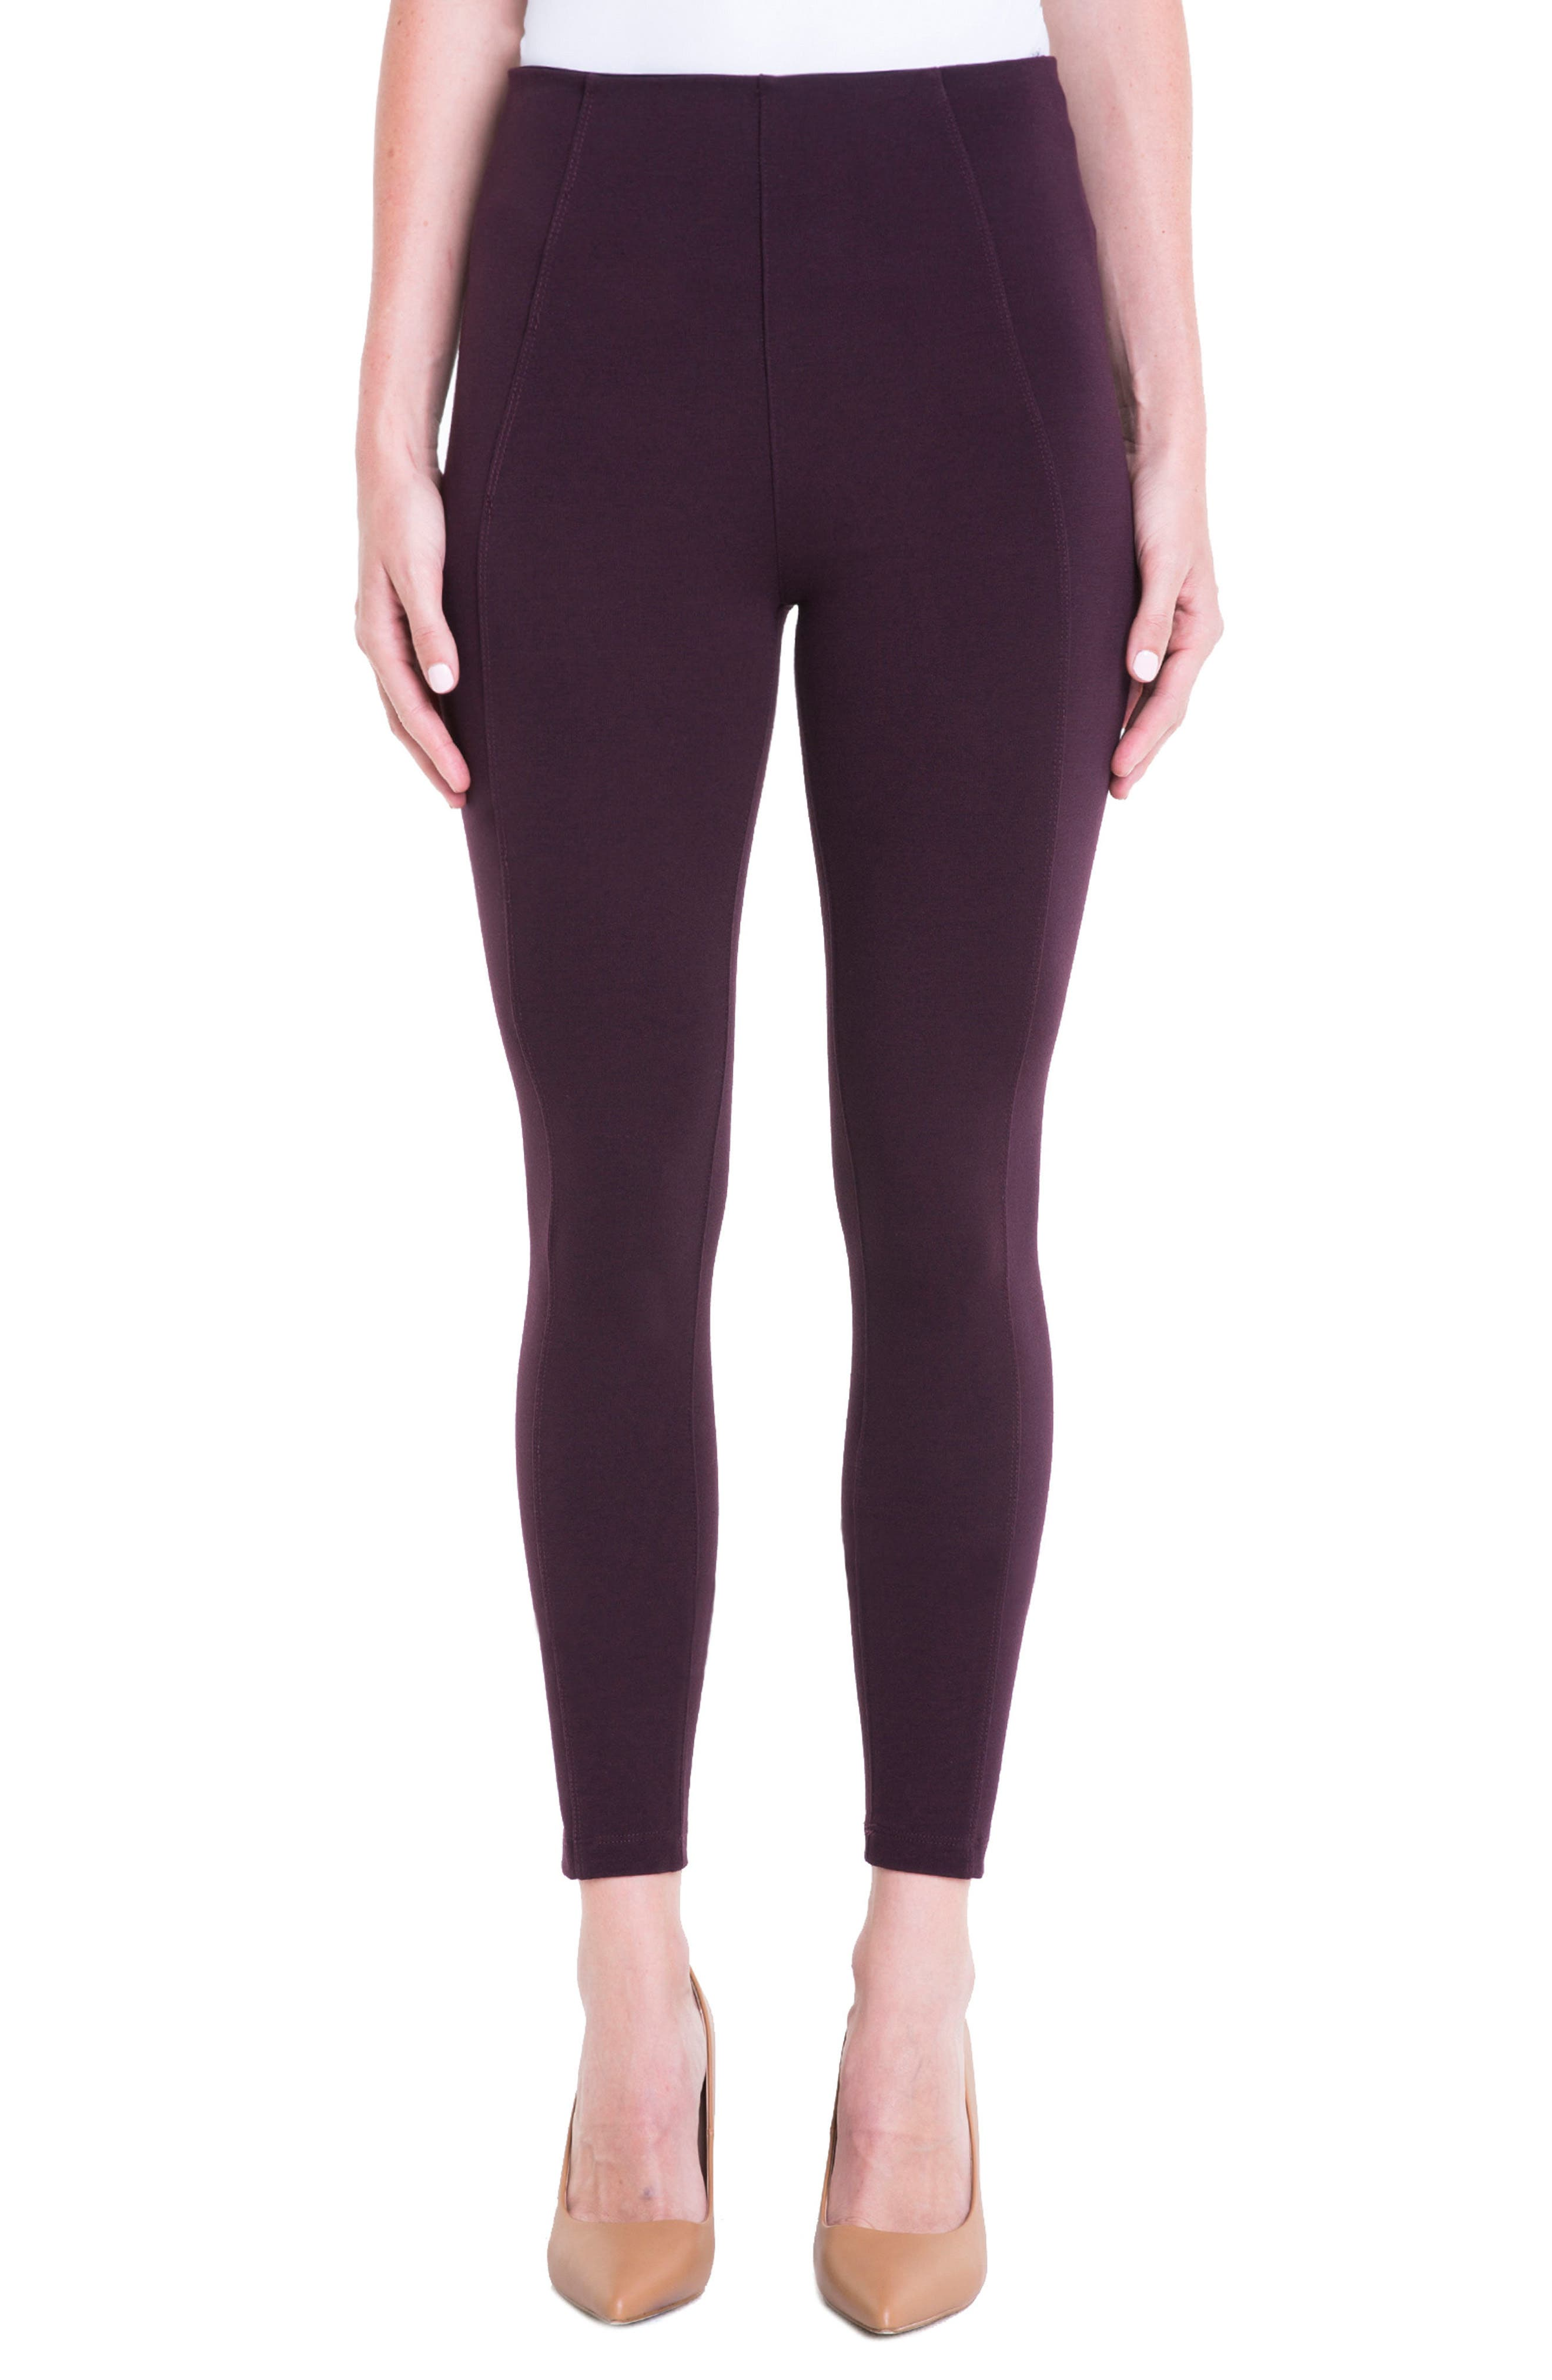 Alternate Image 1 Selected - Liverpool Jeans Company Reese Ankle Leggings